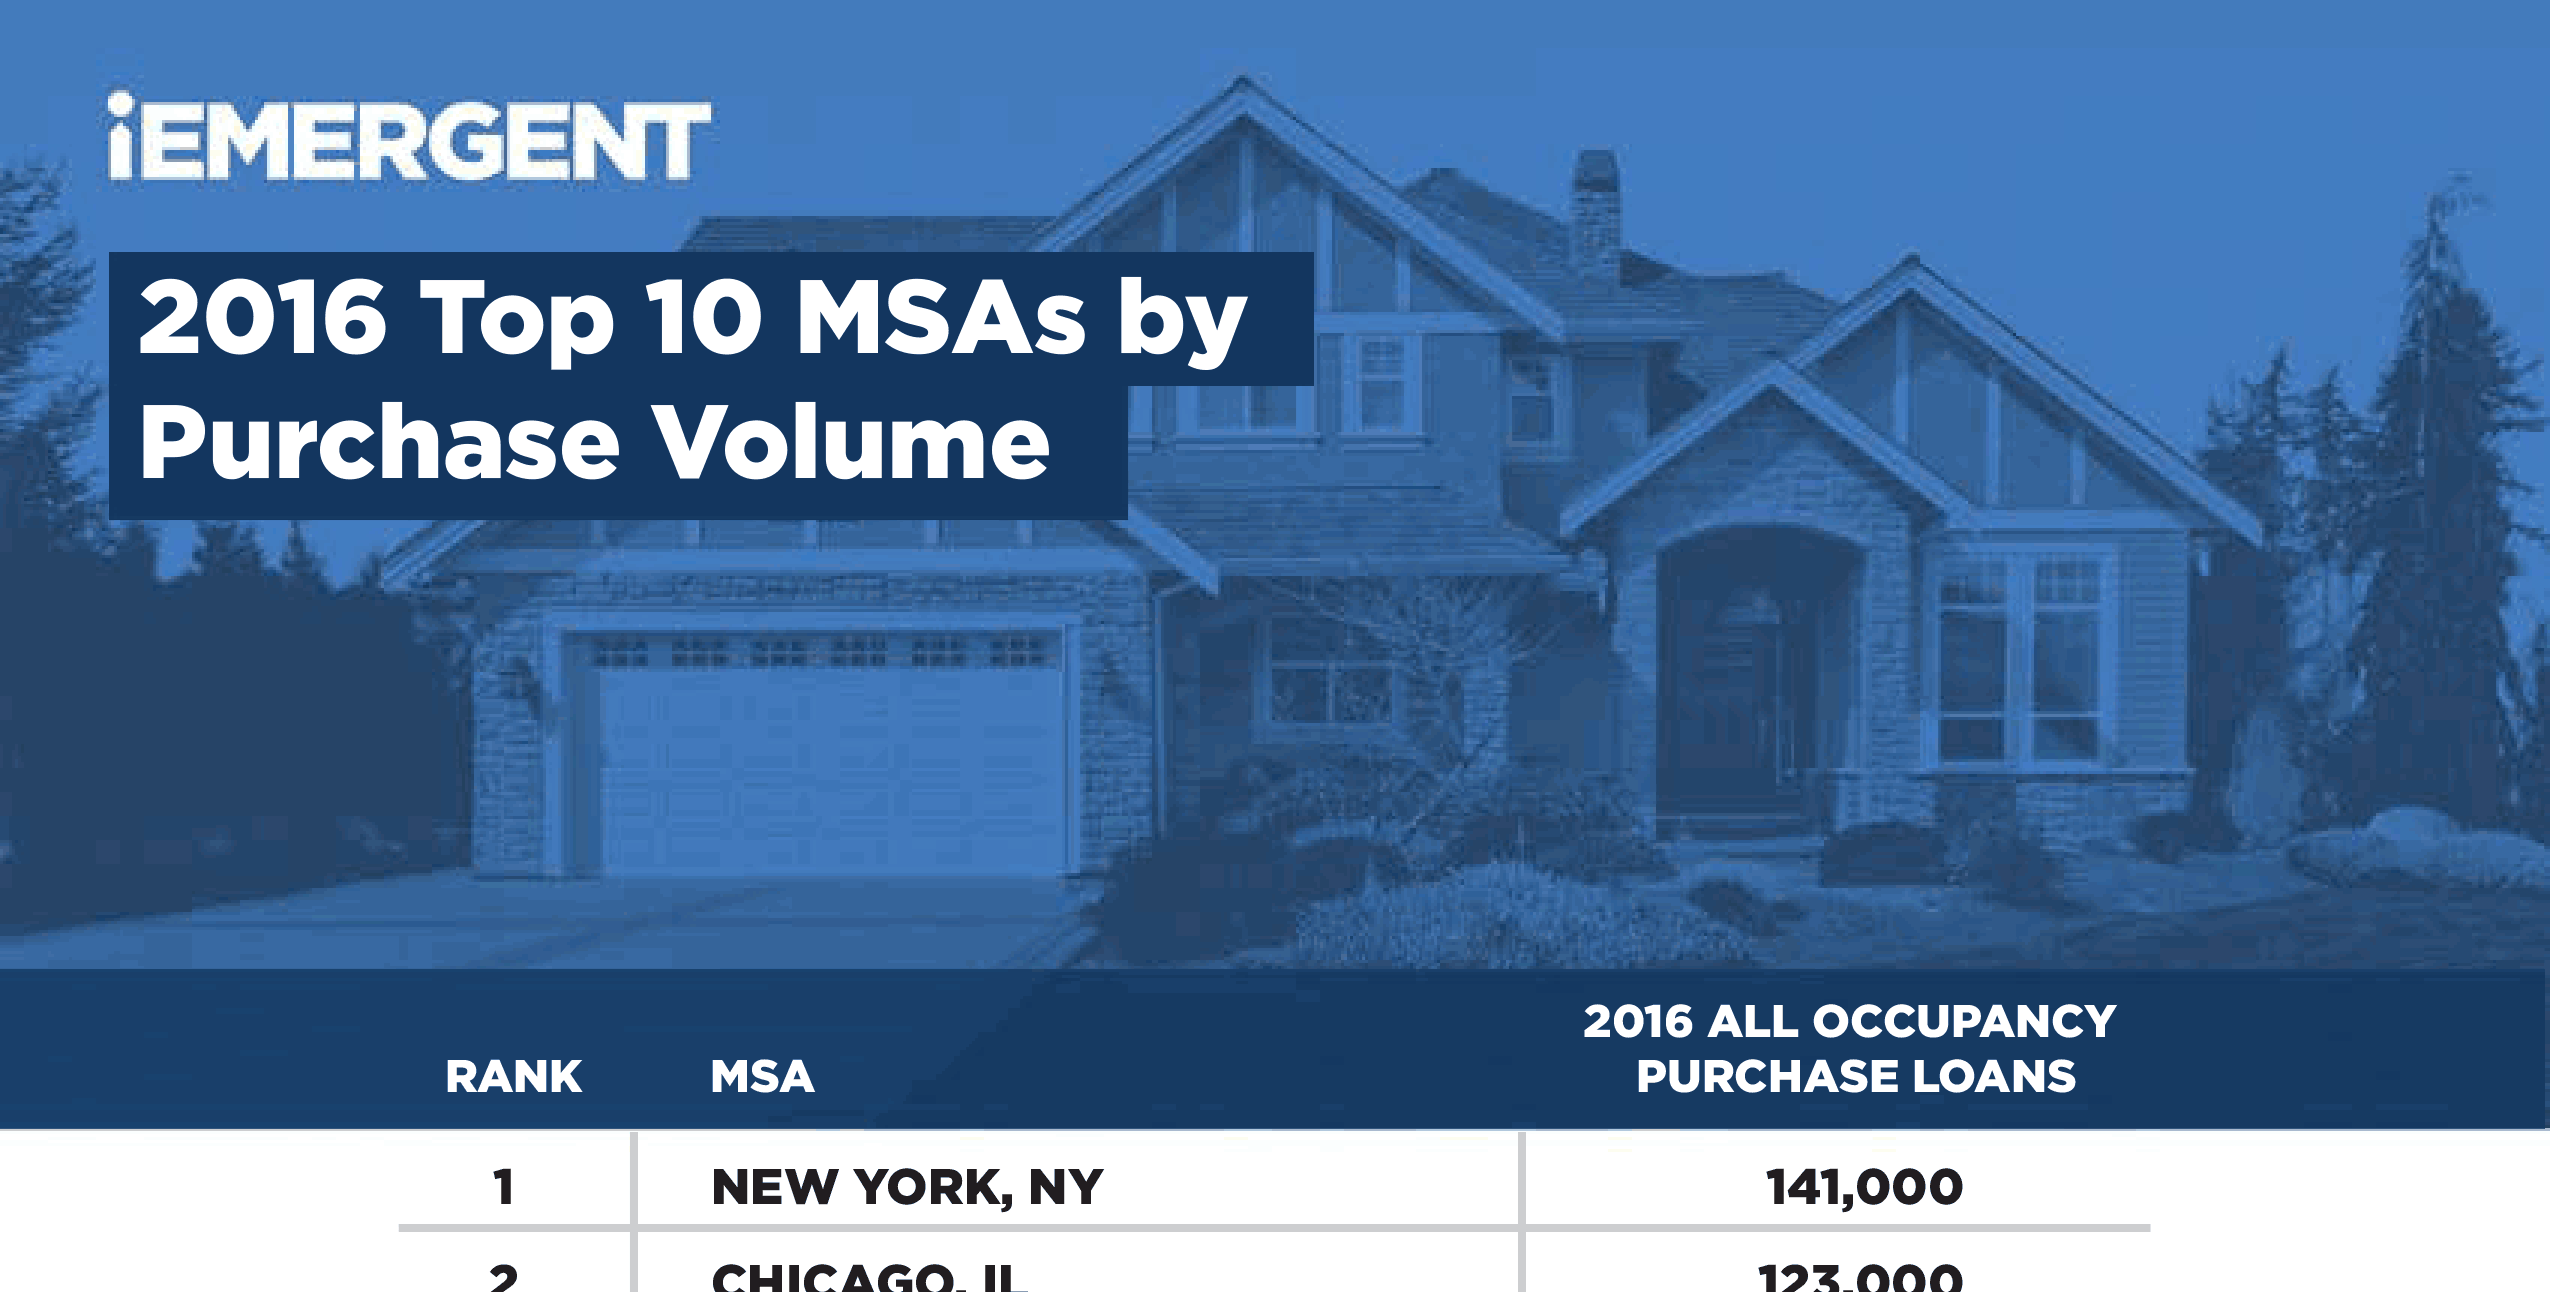 2016 Top 10 MSAs by Purchase Volume